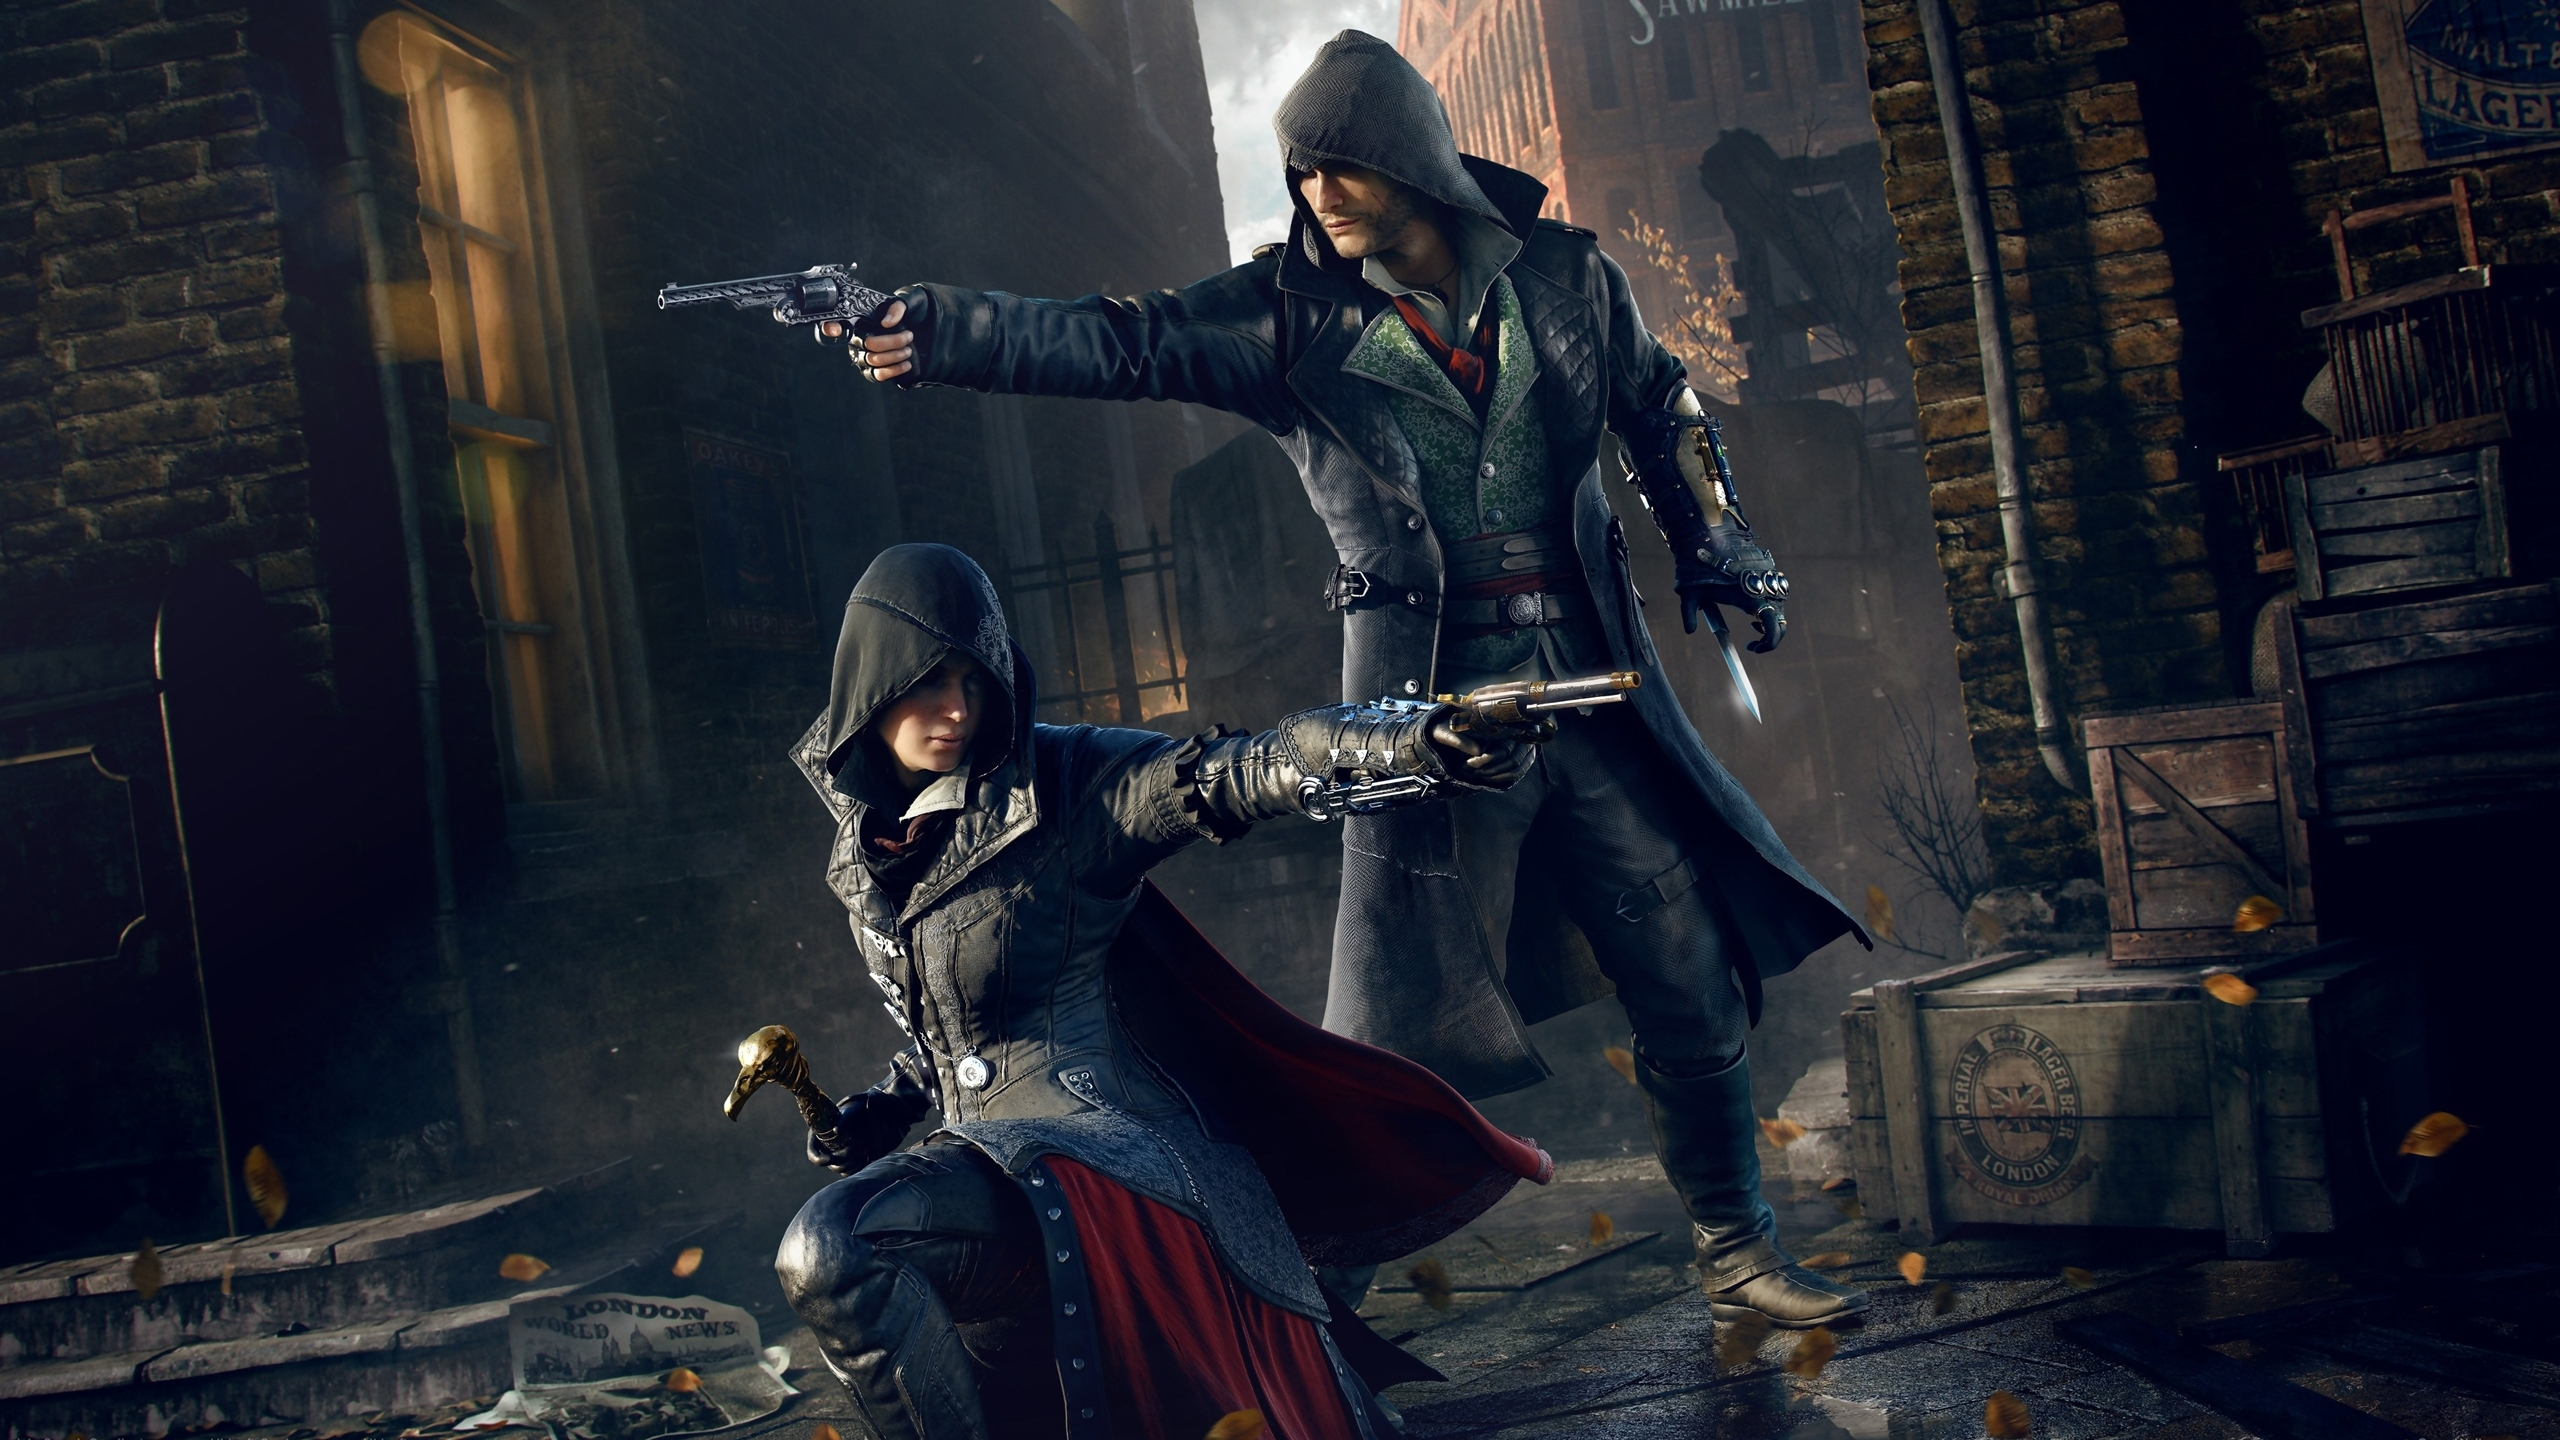 assassin's creed: syndicate full hd fond d'écran and arrière-plan